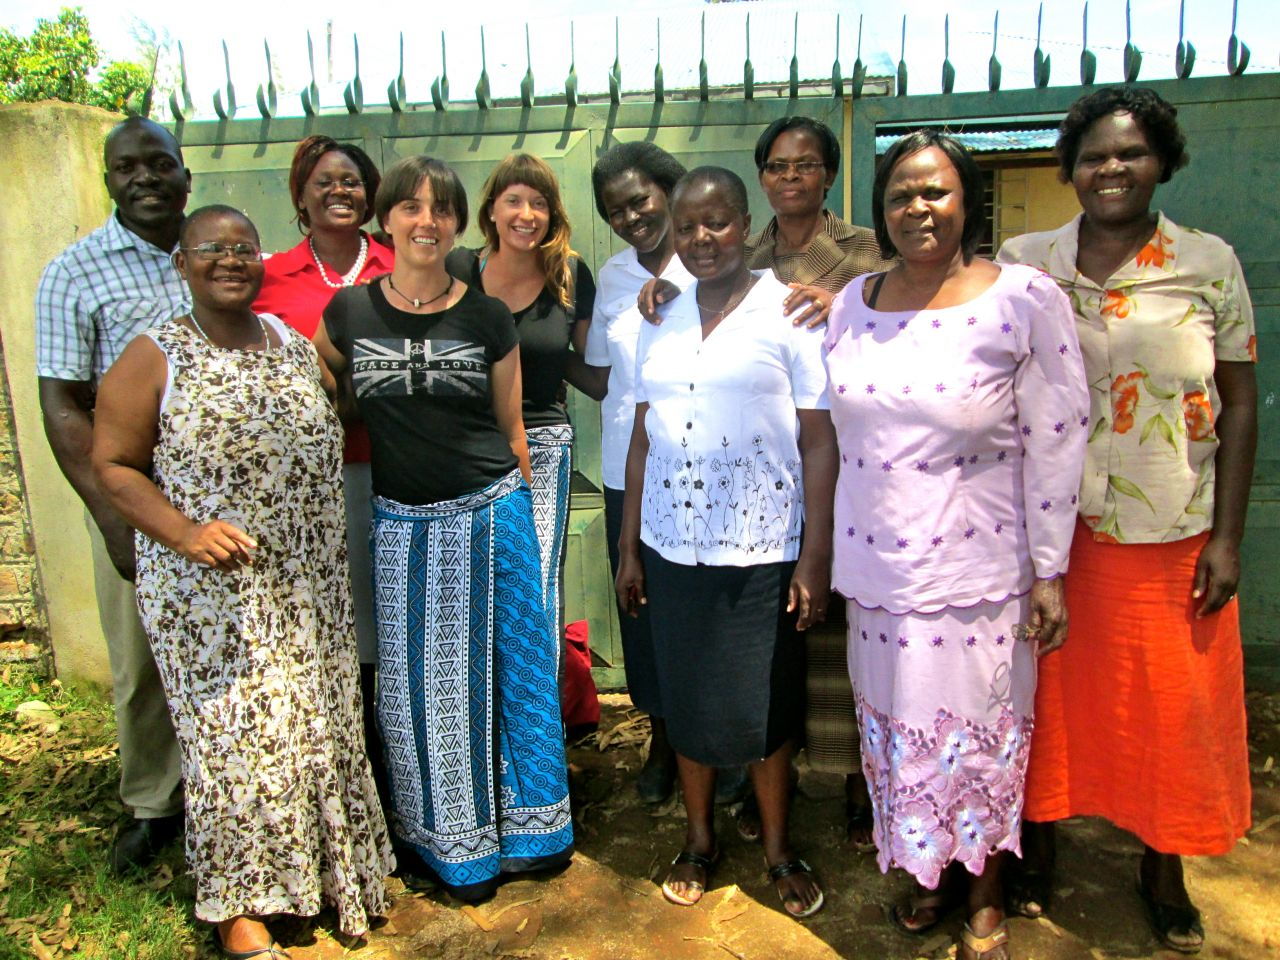 Mama Hope's global advocates Sydney Gray and Katrina Boratko with the staff of the Kenyan organization Our Lady of Perpetual Support.